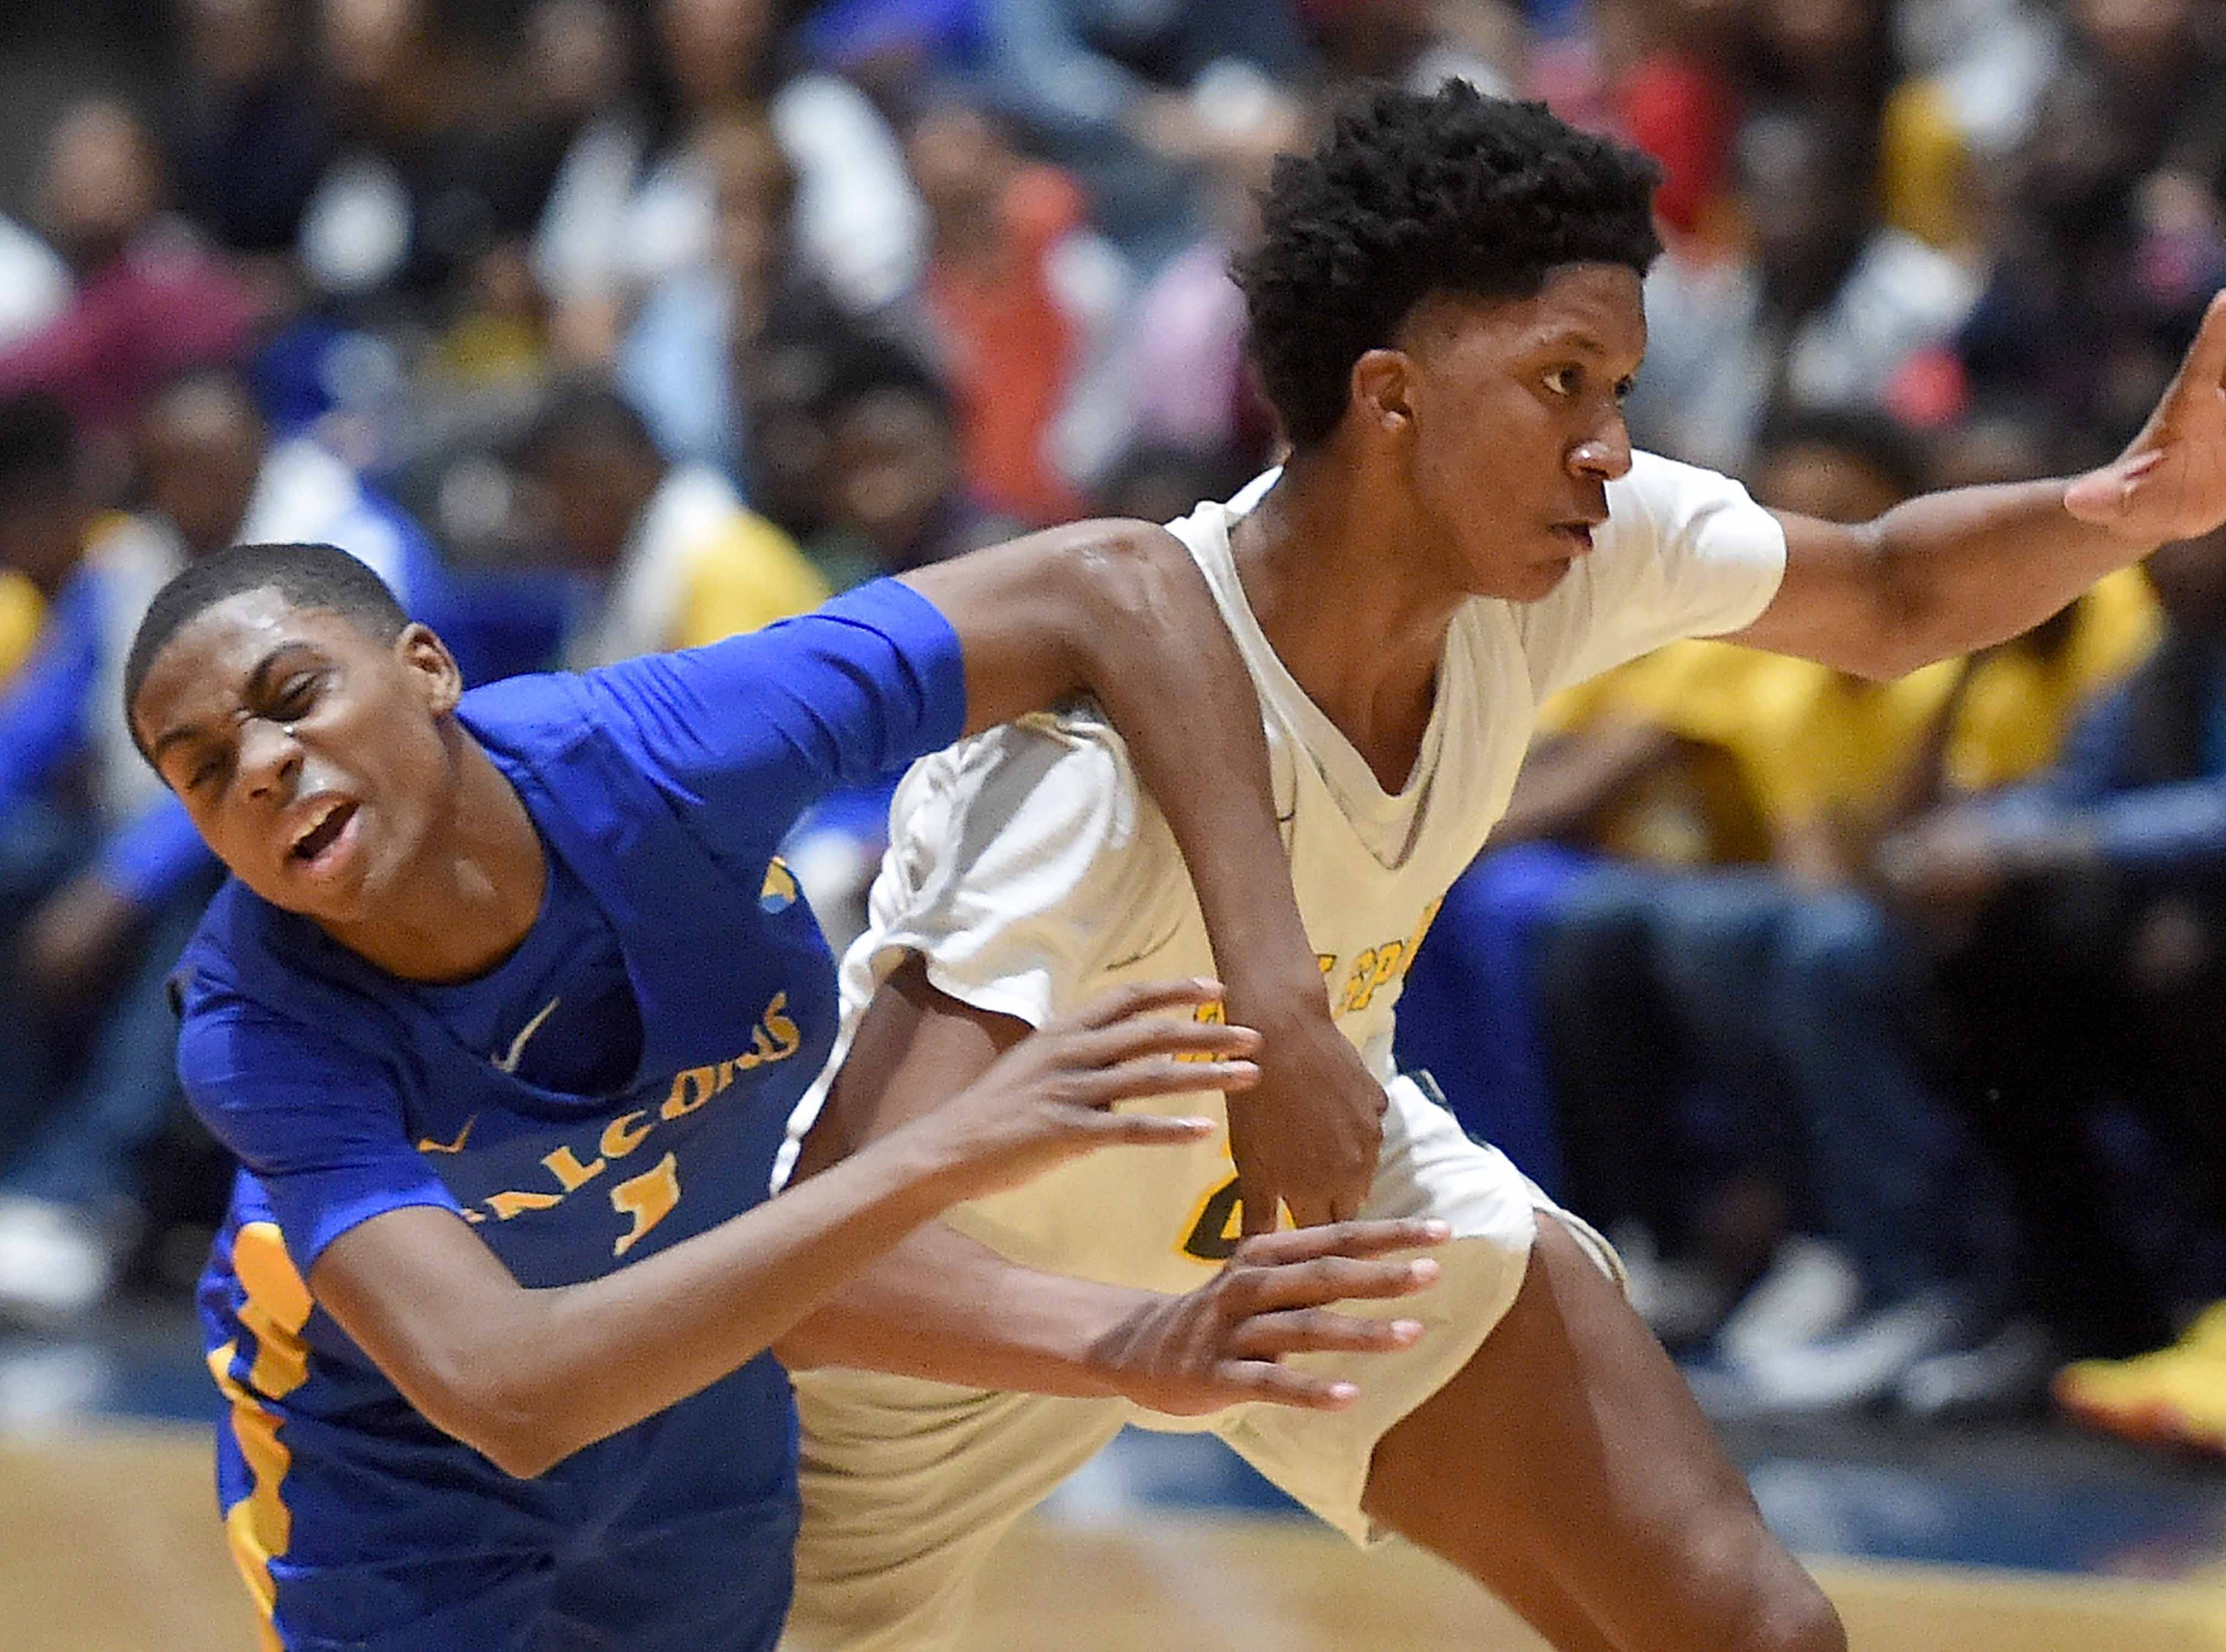 Holly Springs' Derek Fountain (20) steals the ball against Velma Jackson in the finals of the MHSAA C Spire State Basketball Championships at the Mississippi Coliseum in Jackson, Miss., on Saturday, March 9, 2019.